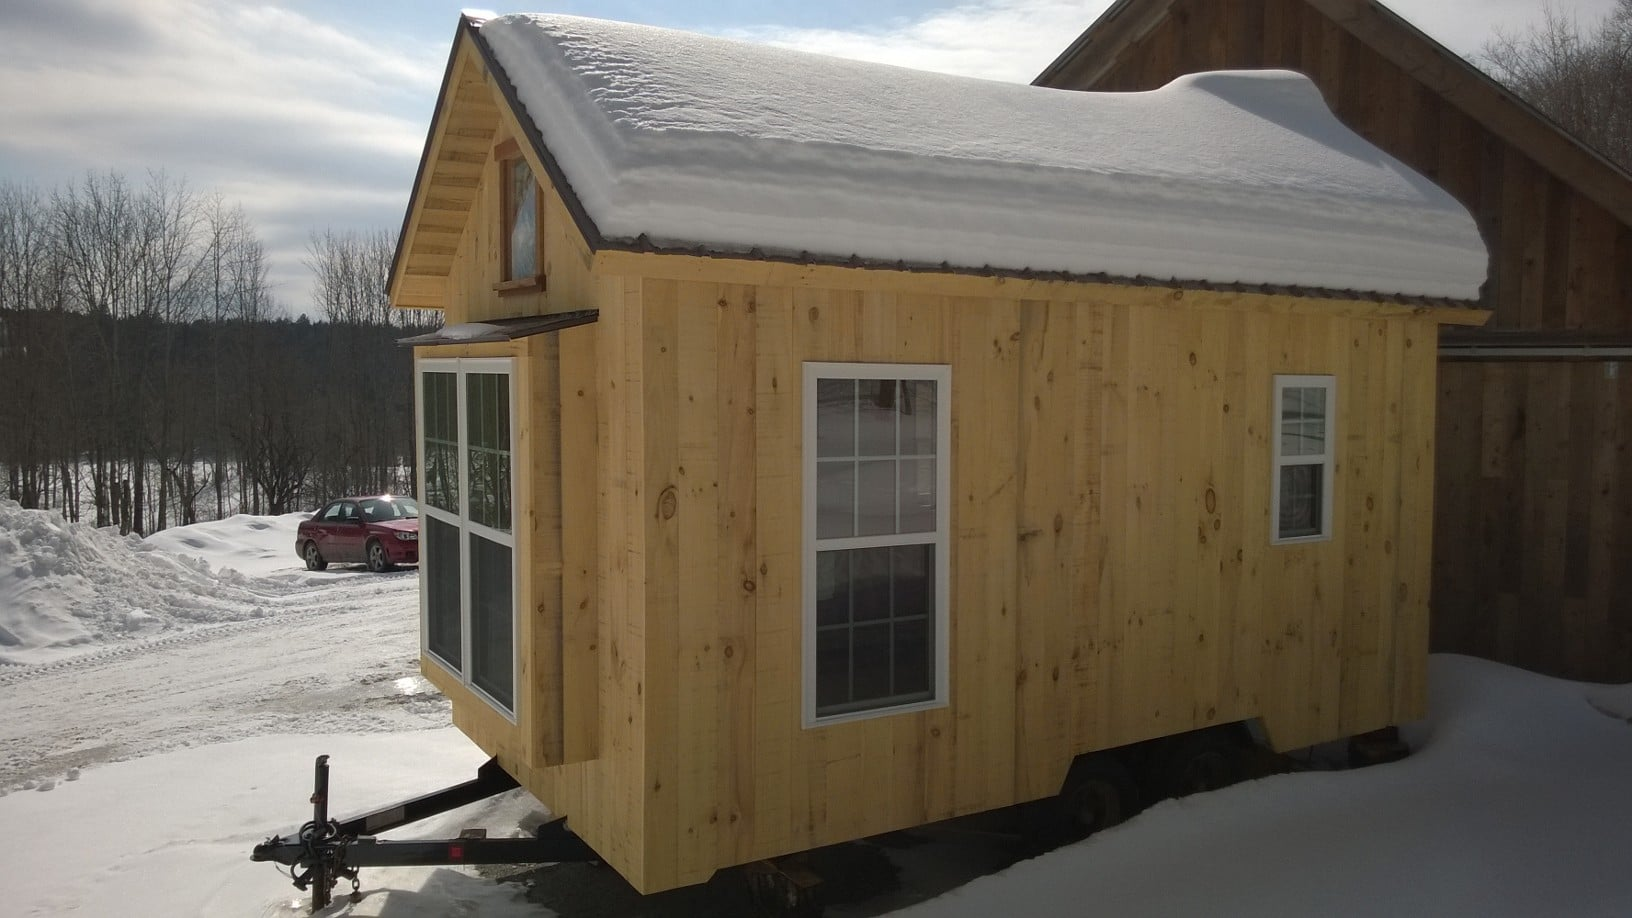 Energy Star Home Timber Frame Barn and Tiny House